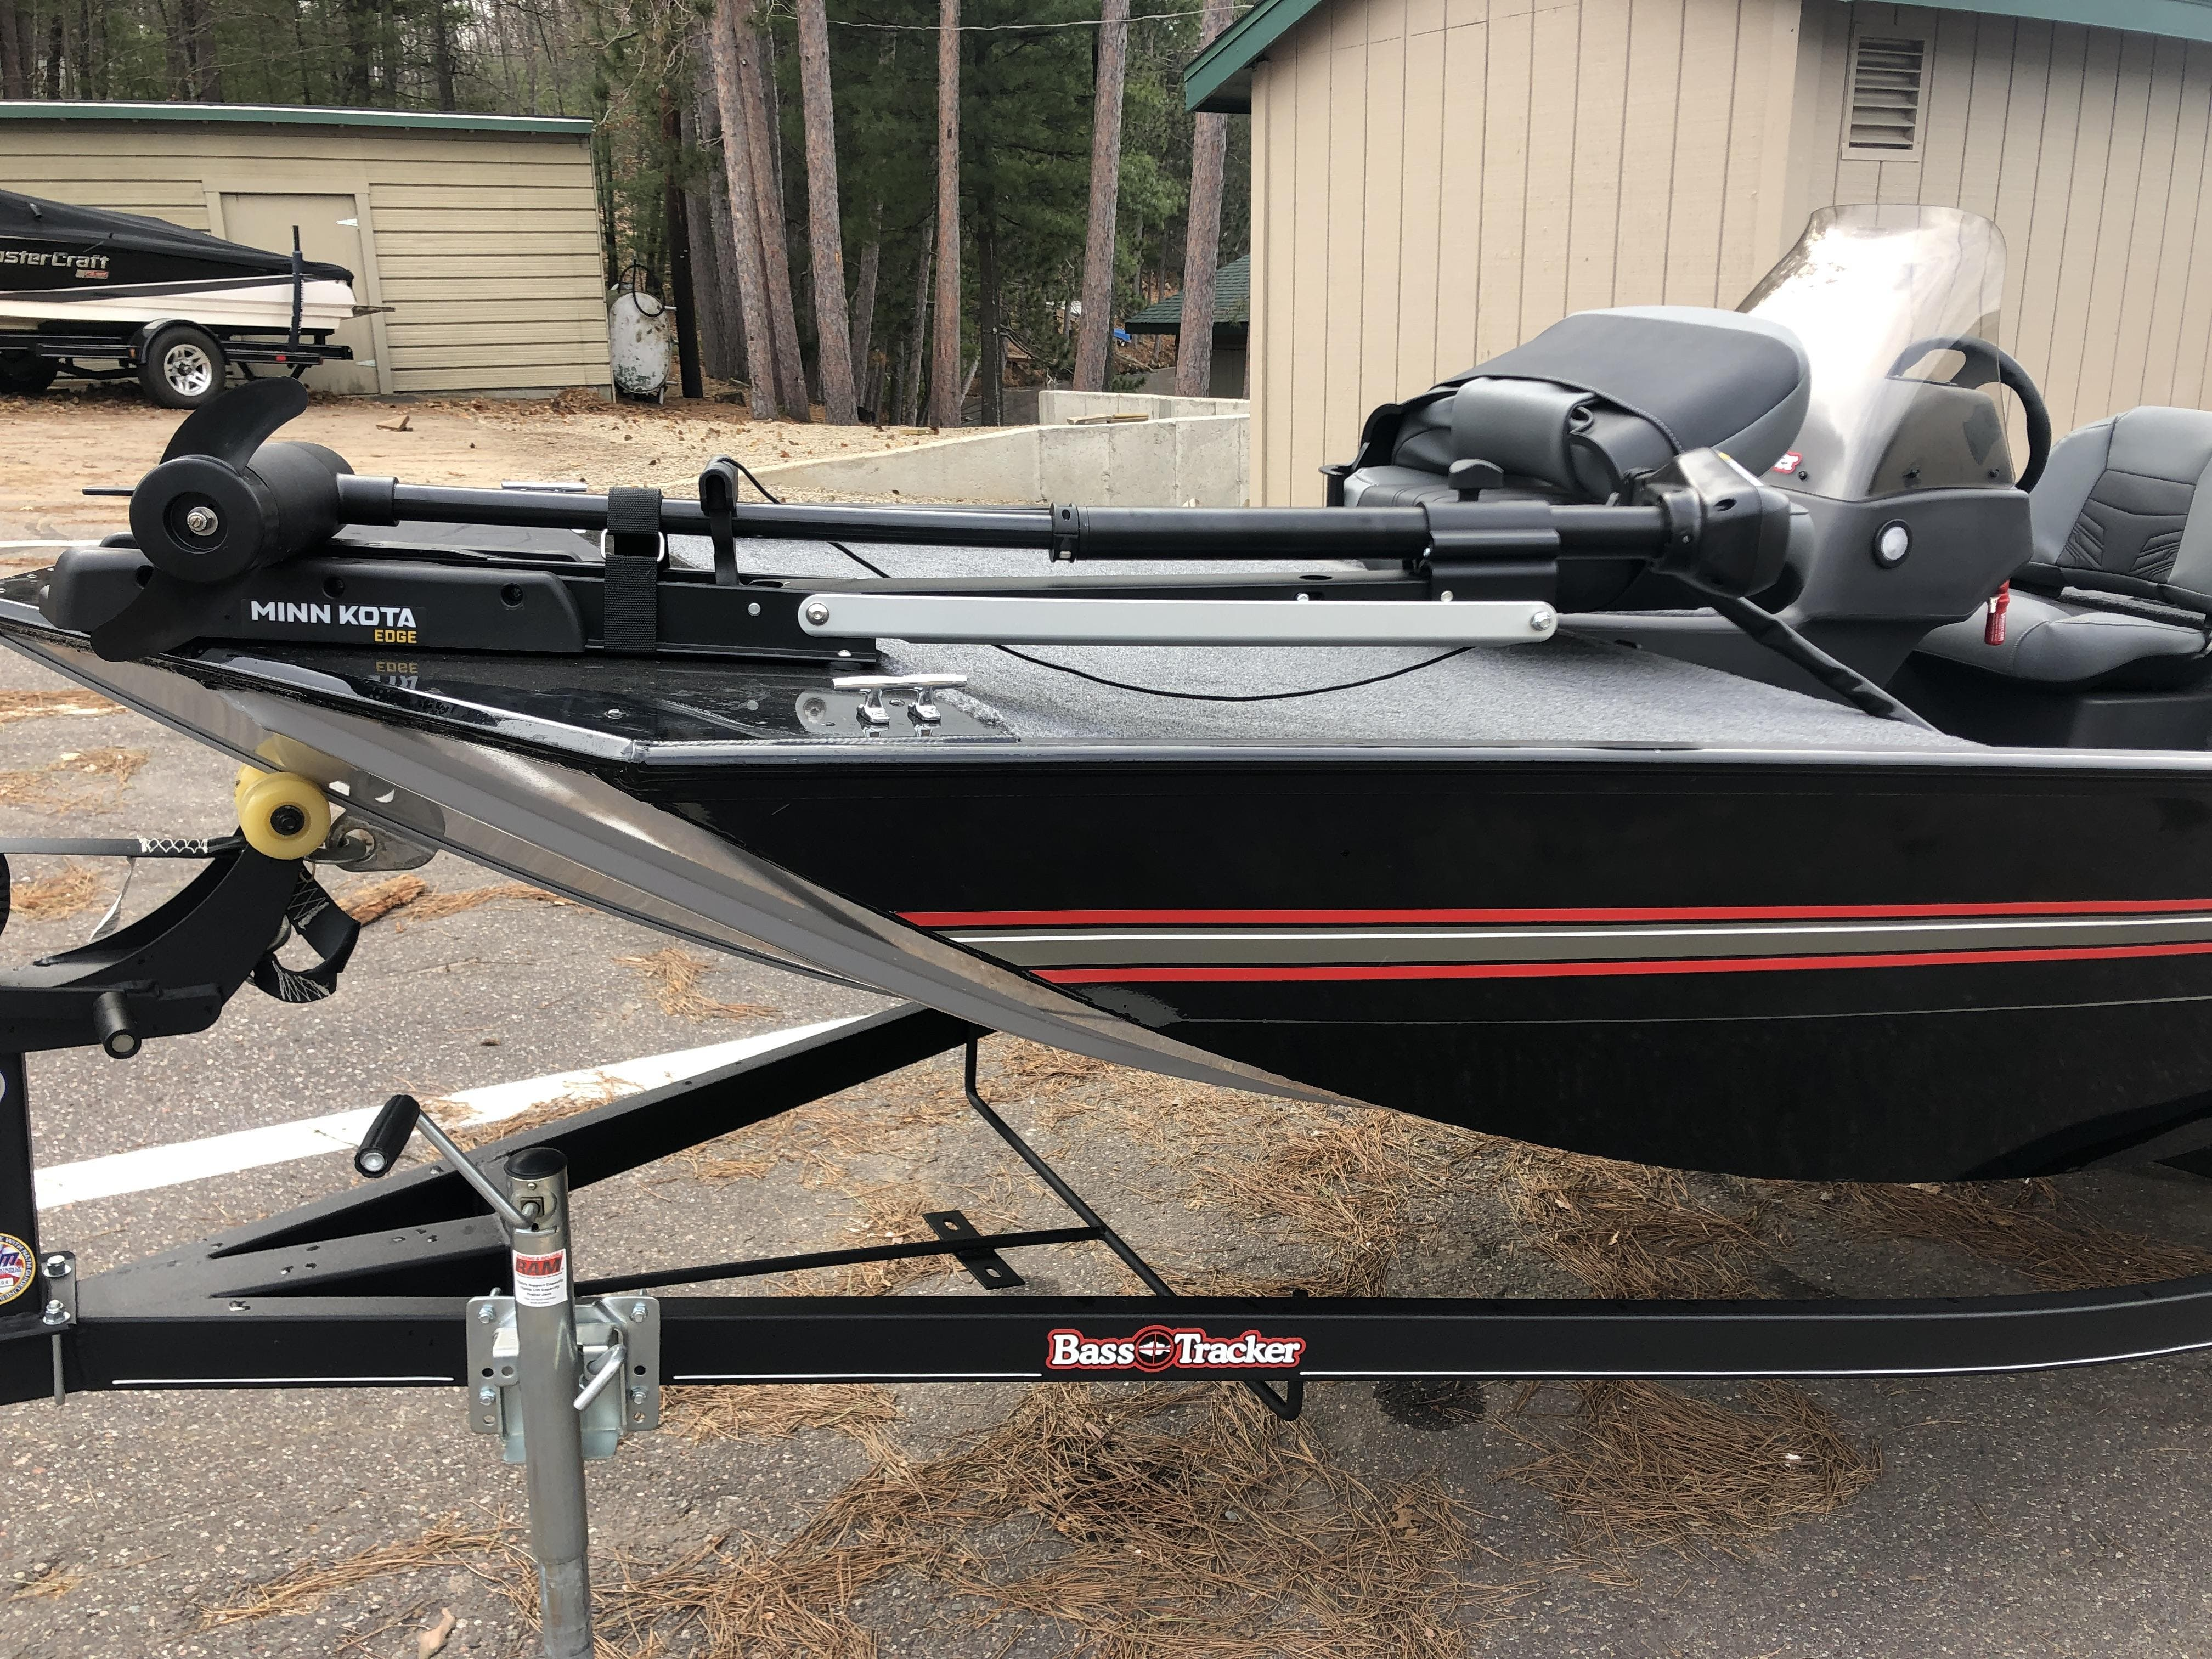 2021 Tracker Boats boat for sale, model of the boat is Bass Tracker & Image # 8 of 10